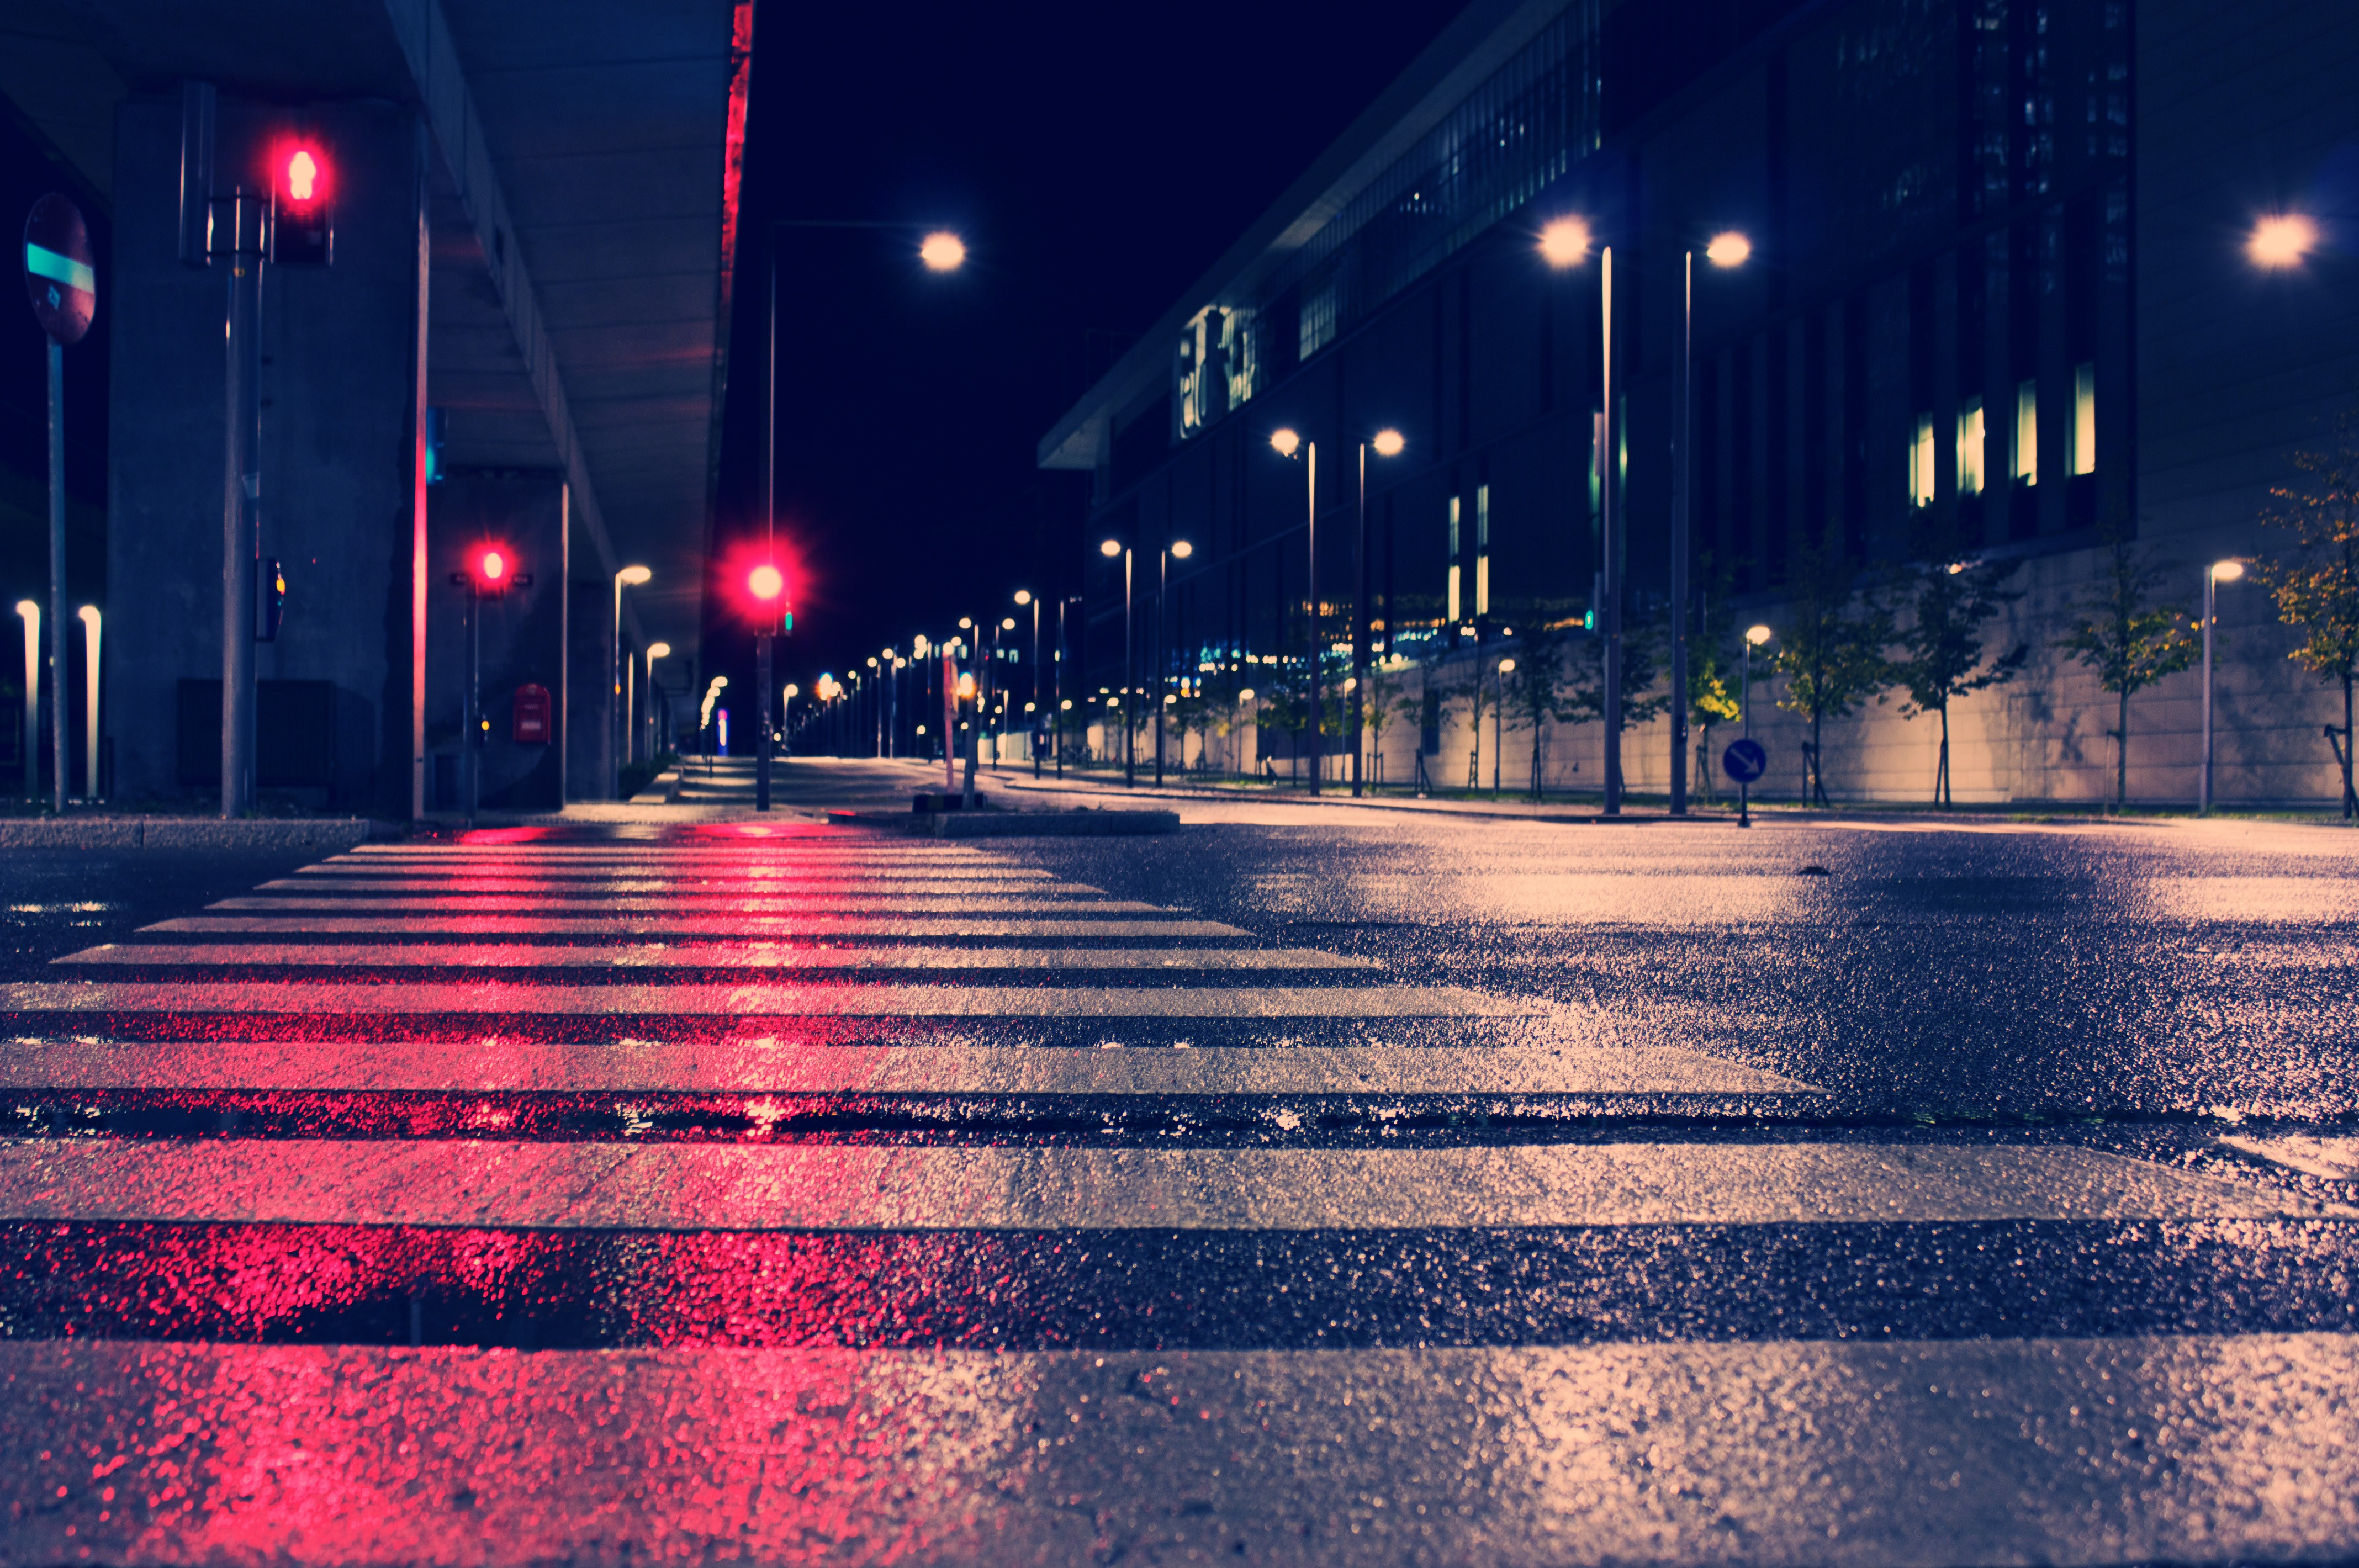 Night city lights street 4k hd photography 4k wallpapers images backgrounds photos and pictures - Light night wallpaper ...